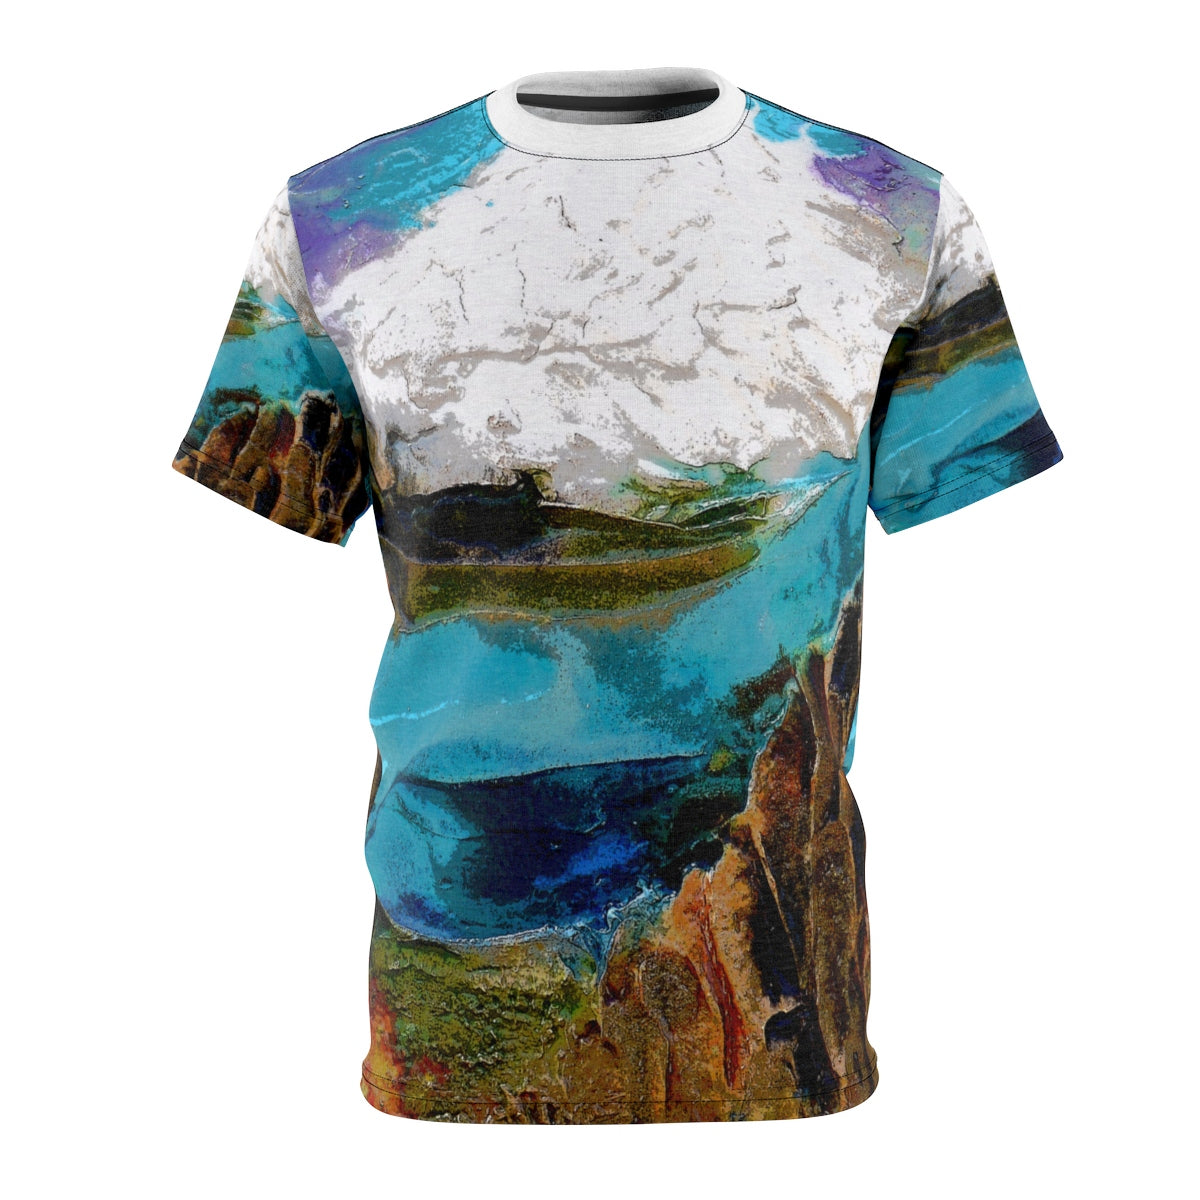 T Shirt - Unisex - 'River Run'